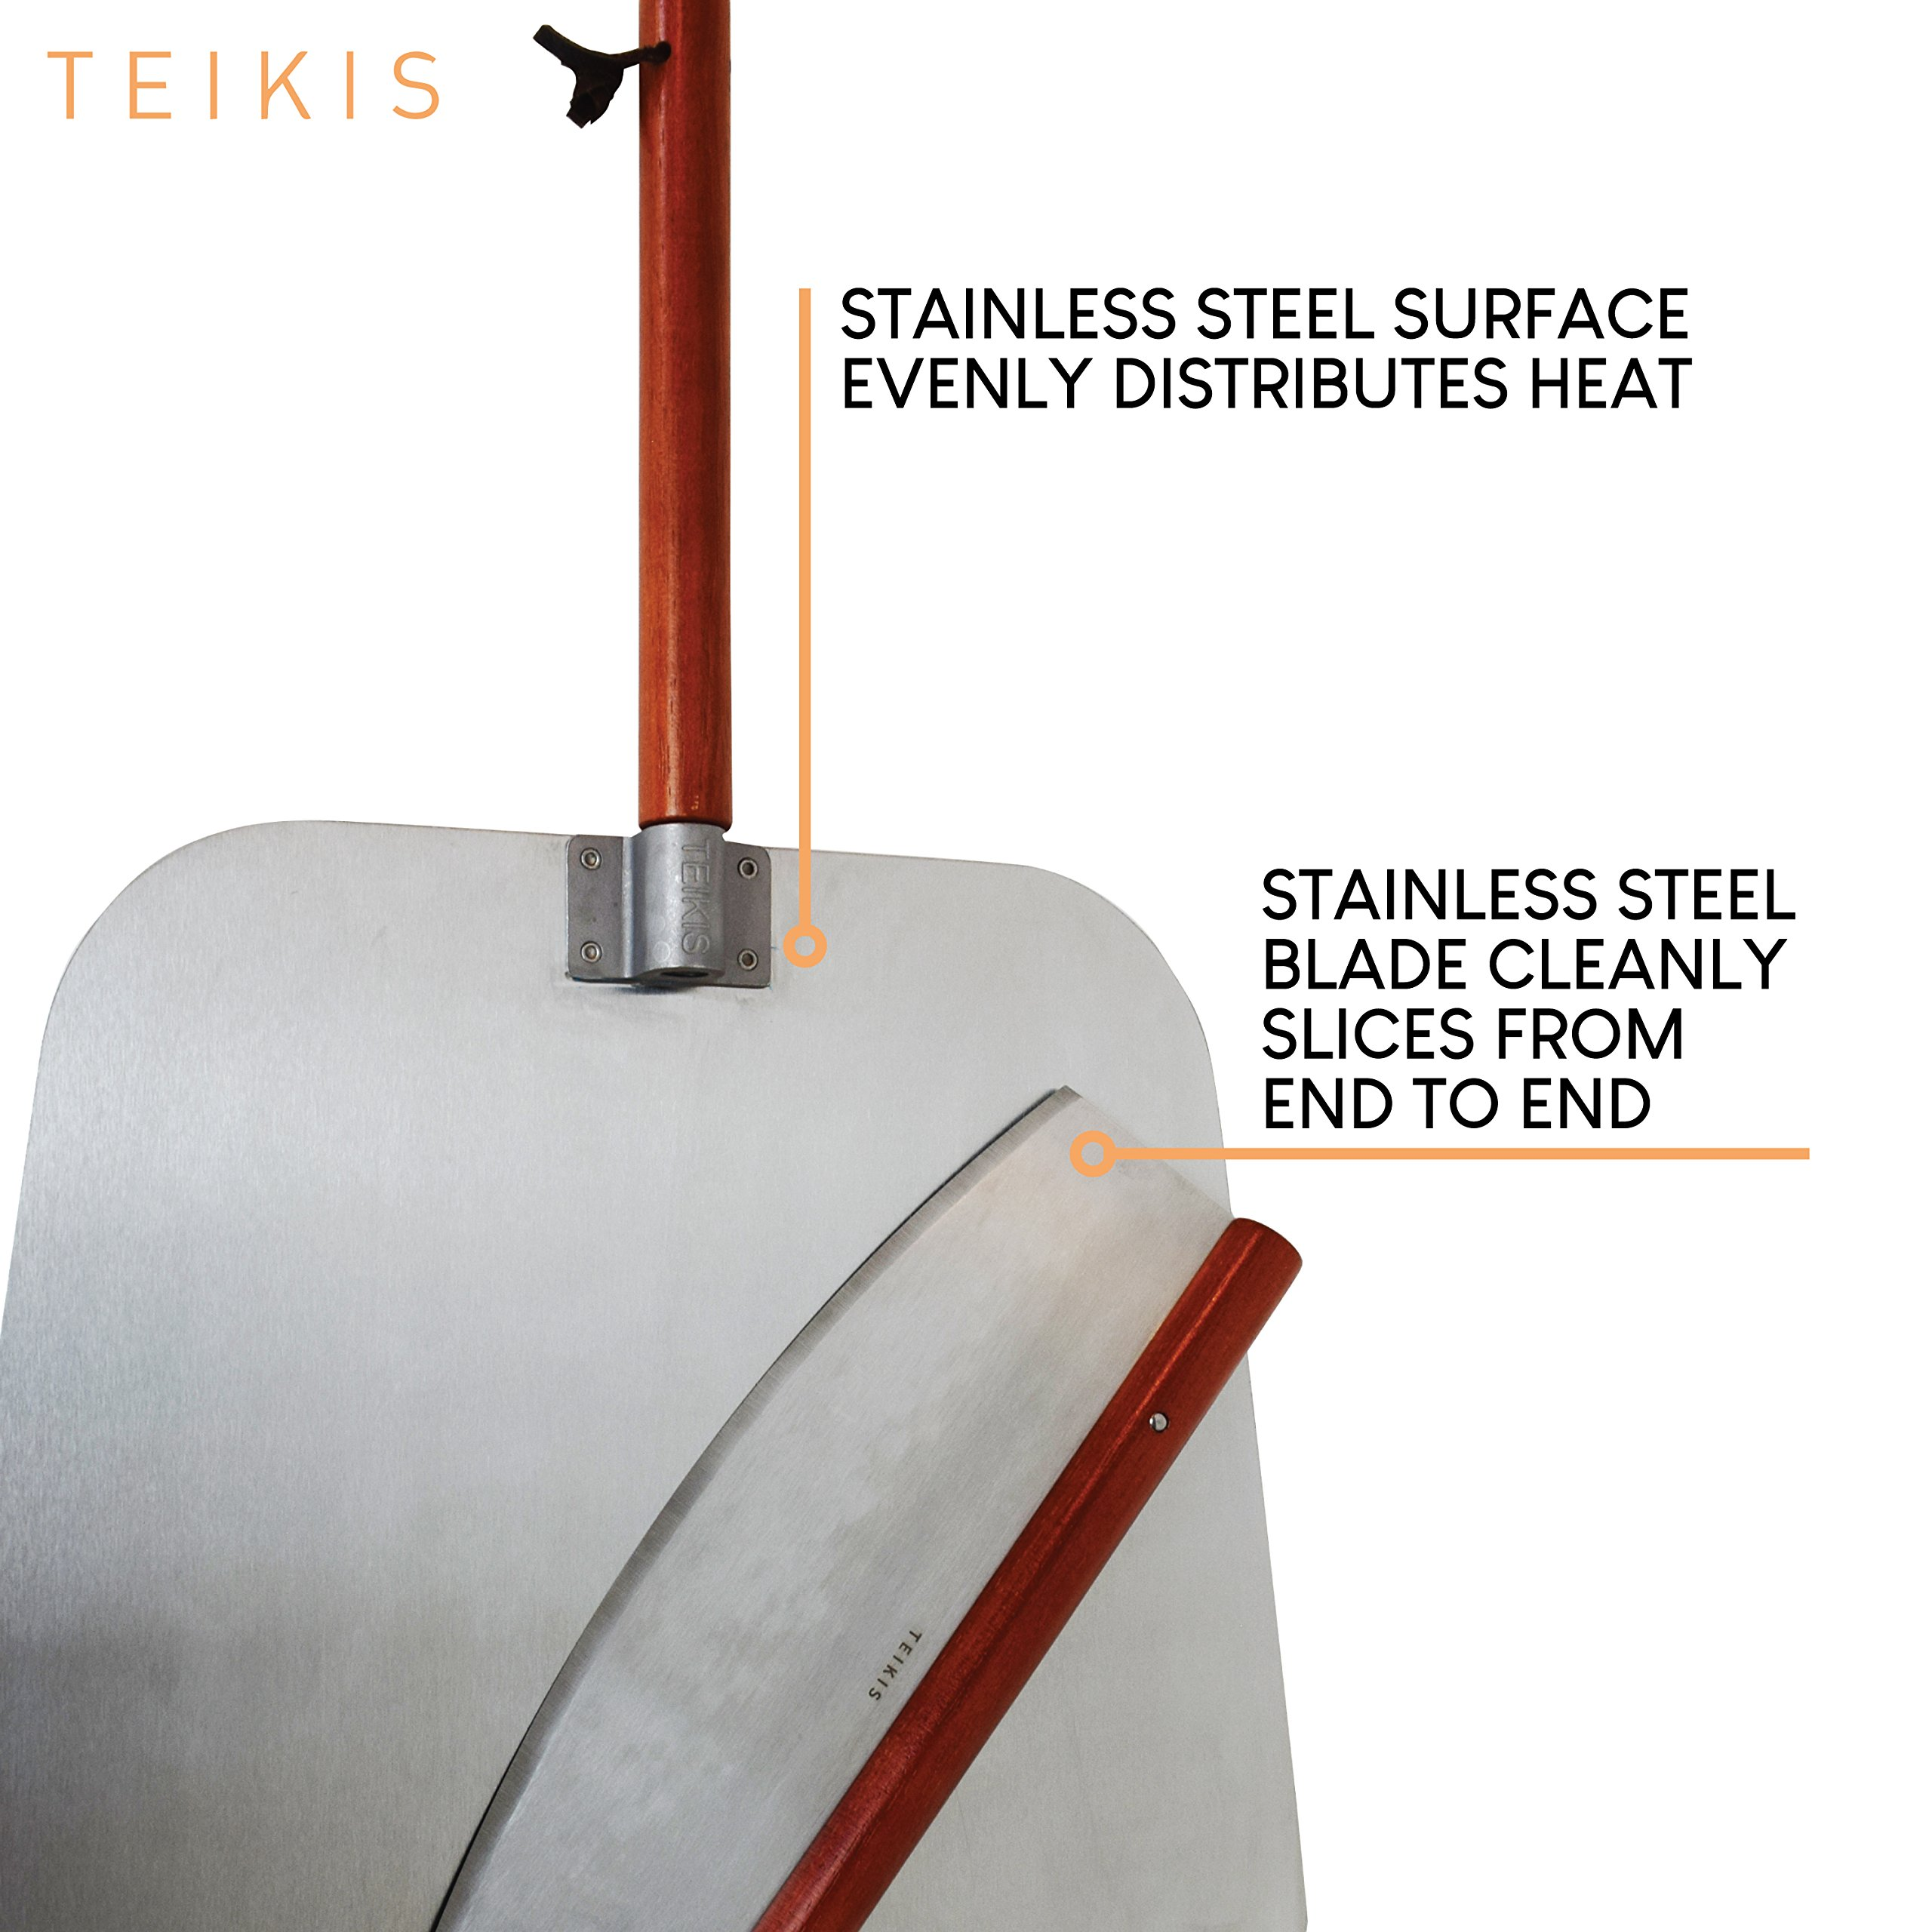 TeiKis Large 14-inch Pizza Cutter + Pizza Peel Paddle Board Set (14-inch x 16-inch) with Wood Handle by TeiKis (Image #5)